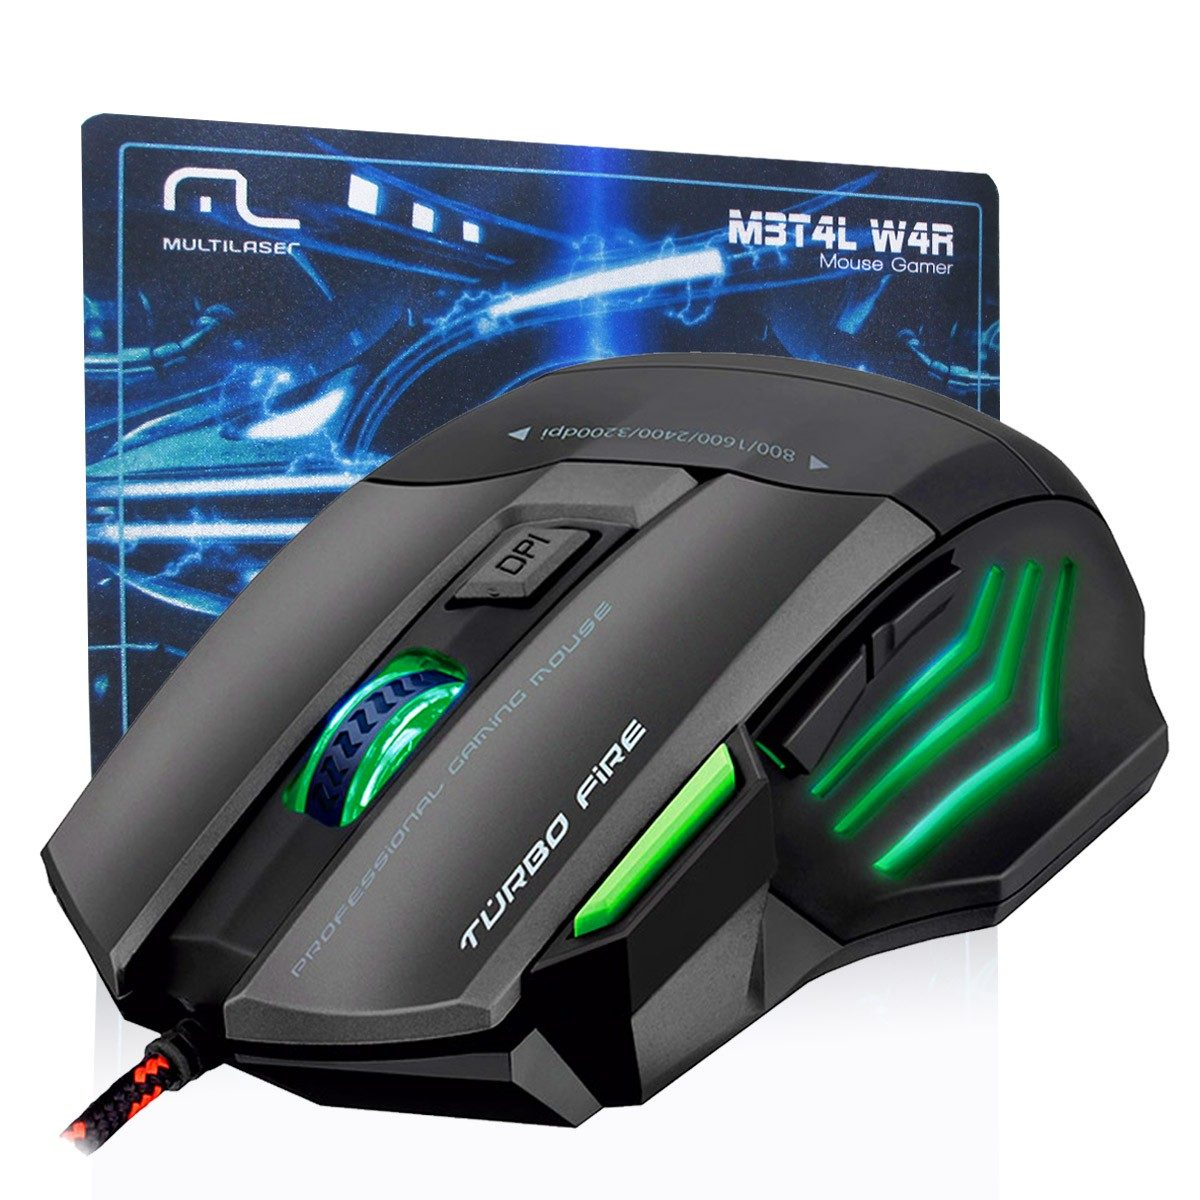 Mouse Gamer Warrior 7 Botoes 3200 Dpi Preto Usb Mo207 Multilaser